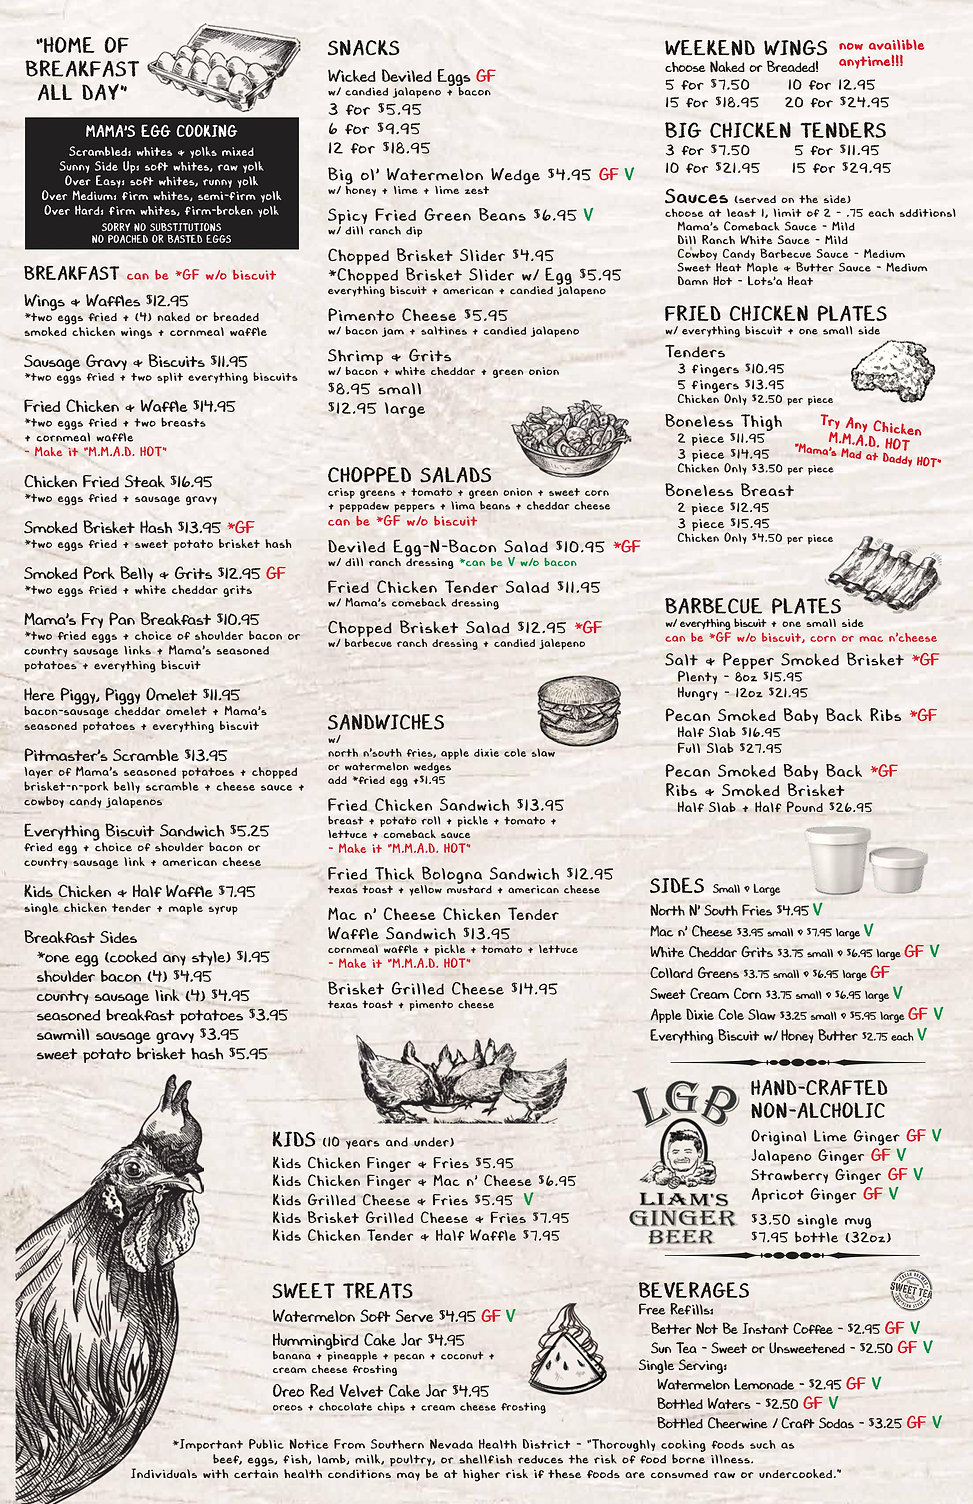 MB Menu May 7 2020 - Page 1.jpg